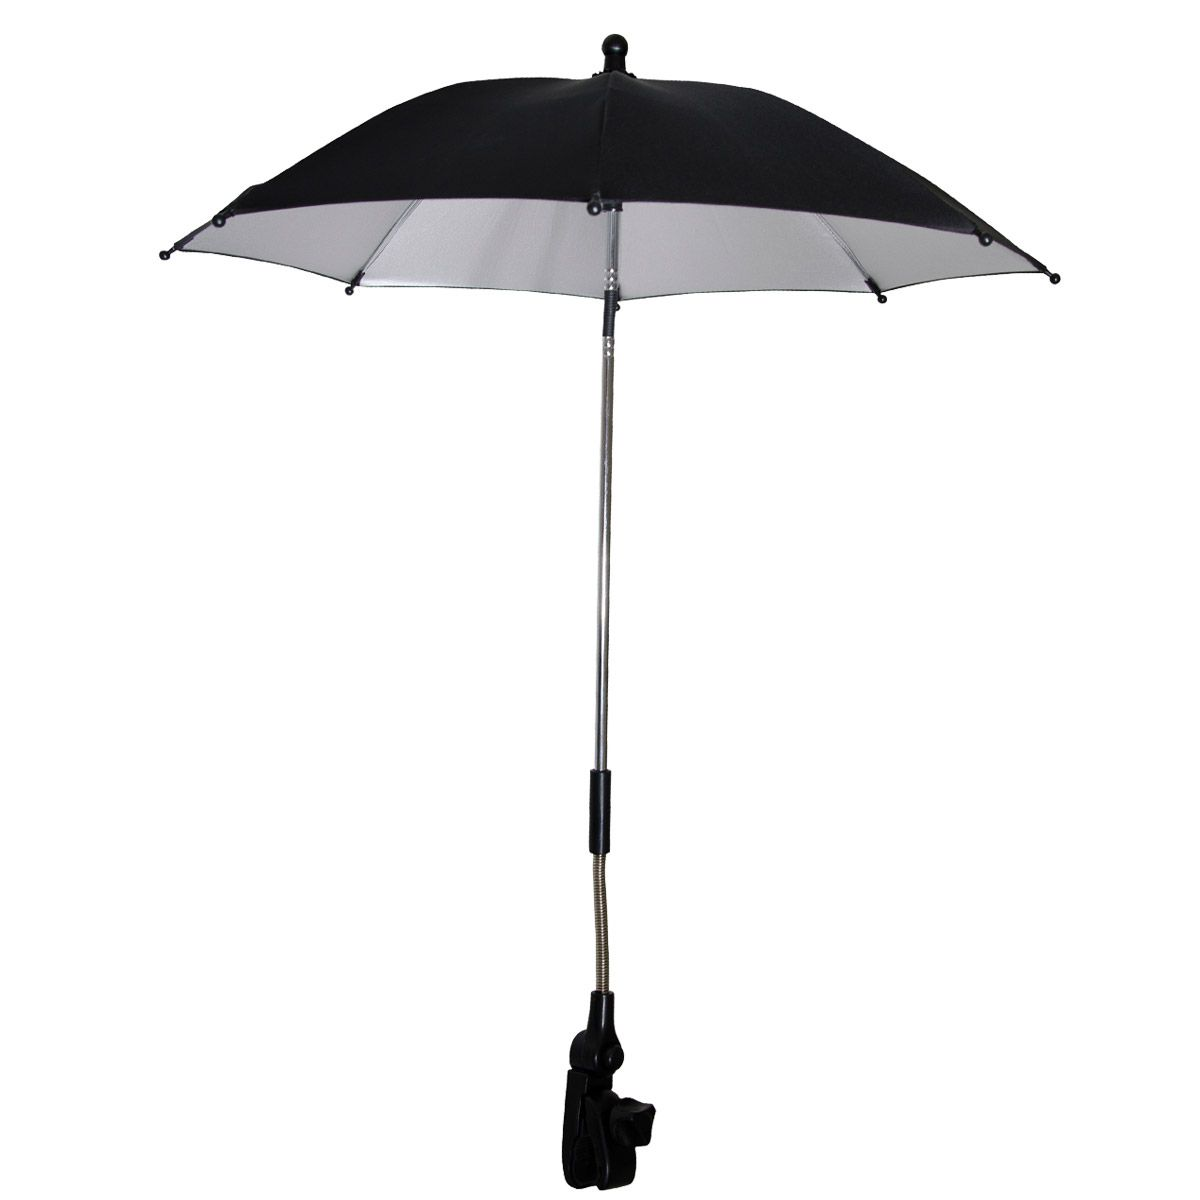 Umbrellas, Strollers and Shades on Pinterest